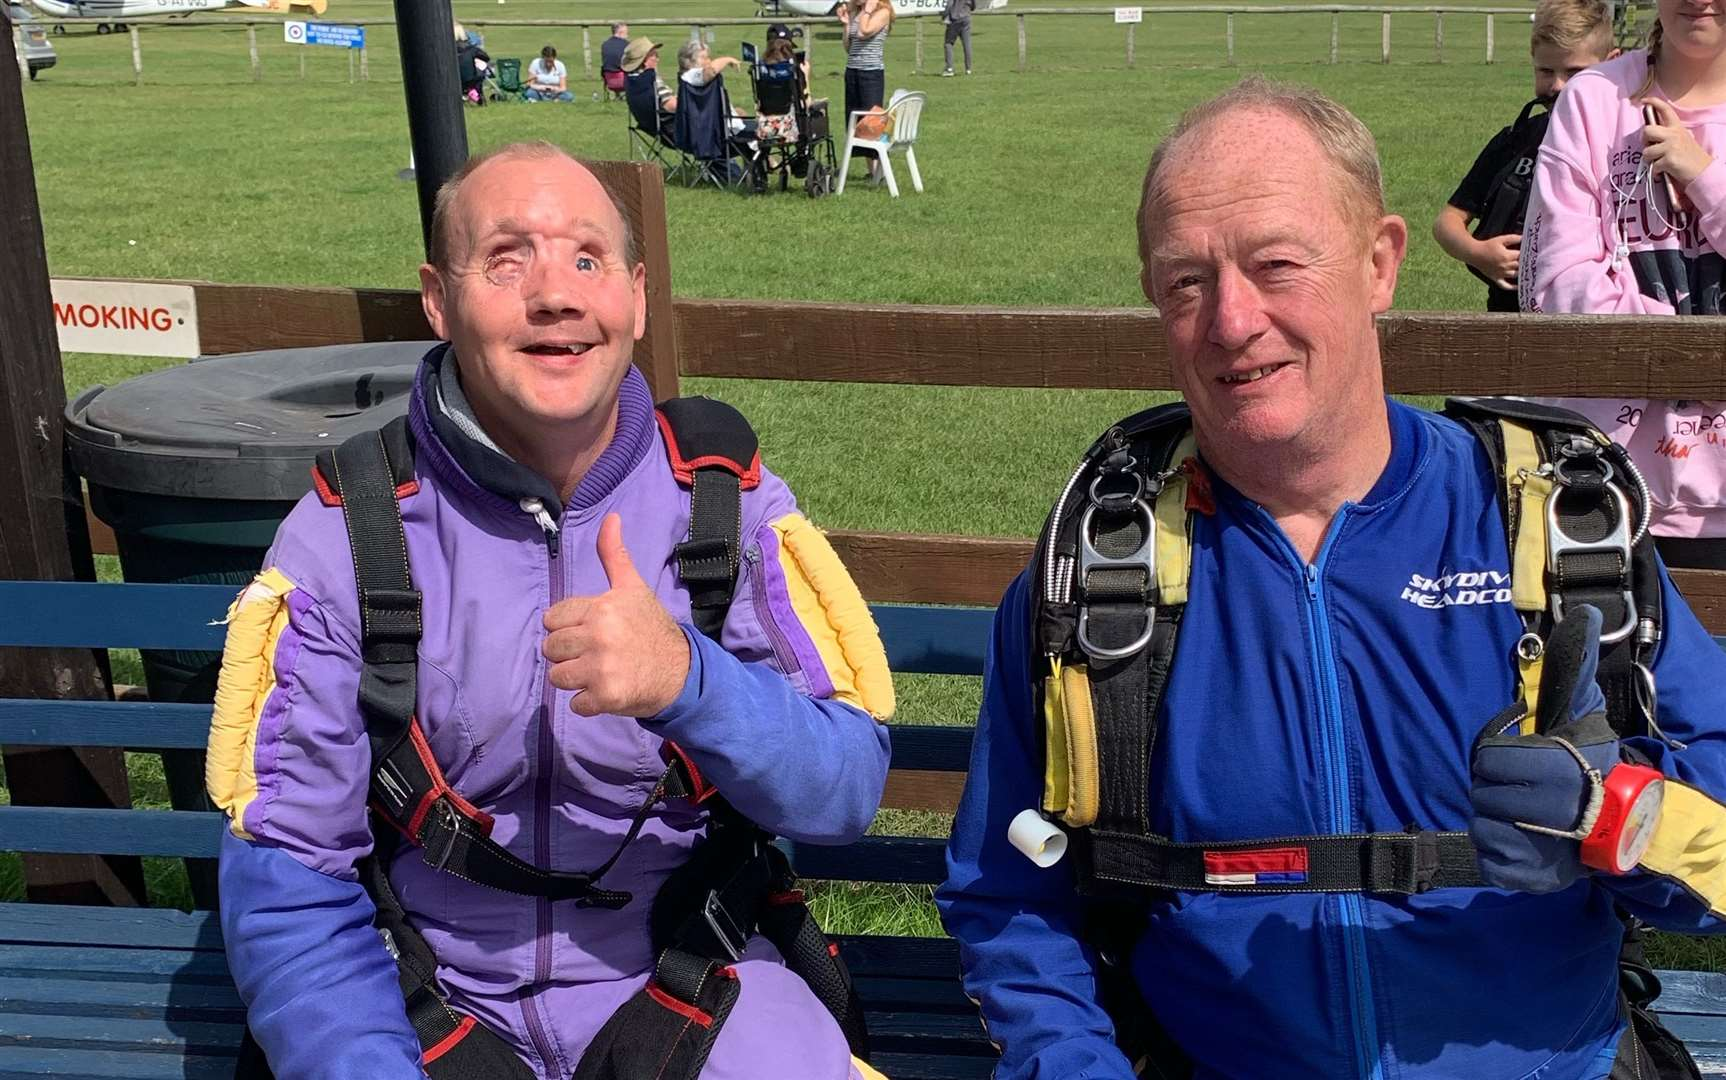 Andrew Foster with his sky dive instructor Dave